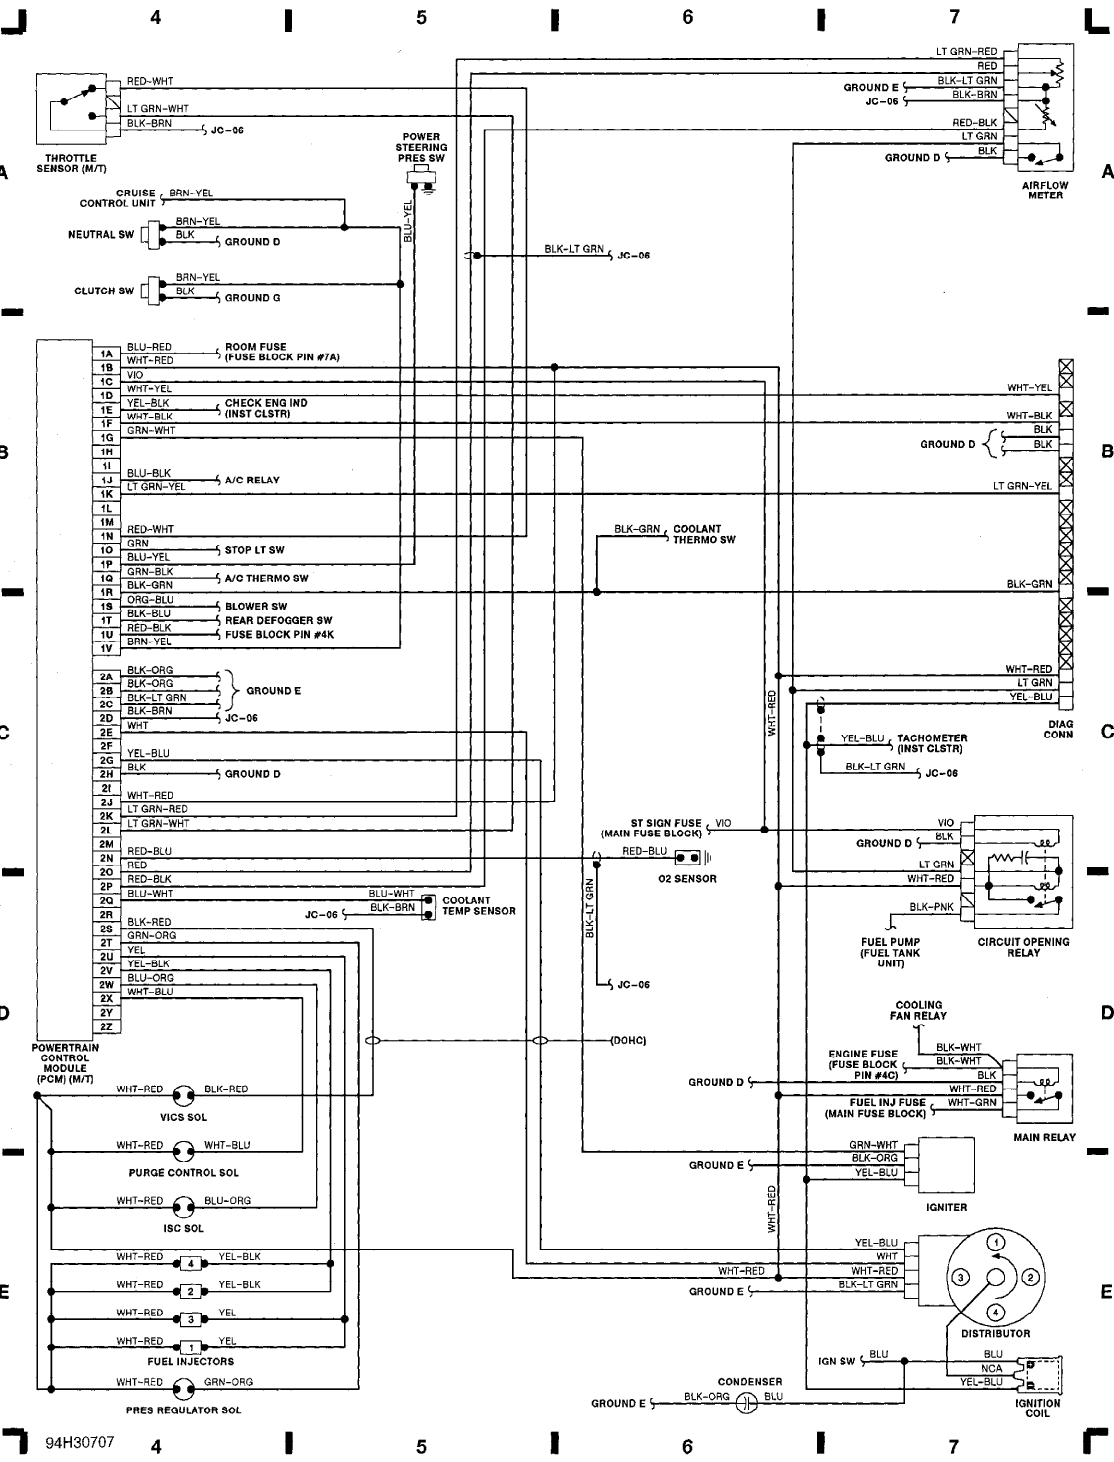 Wiring Diagram 31 Hyundai Sonata Radio Wiring Diagram